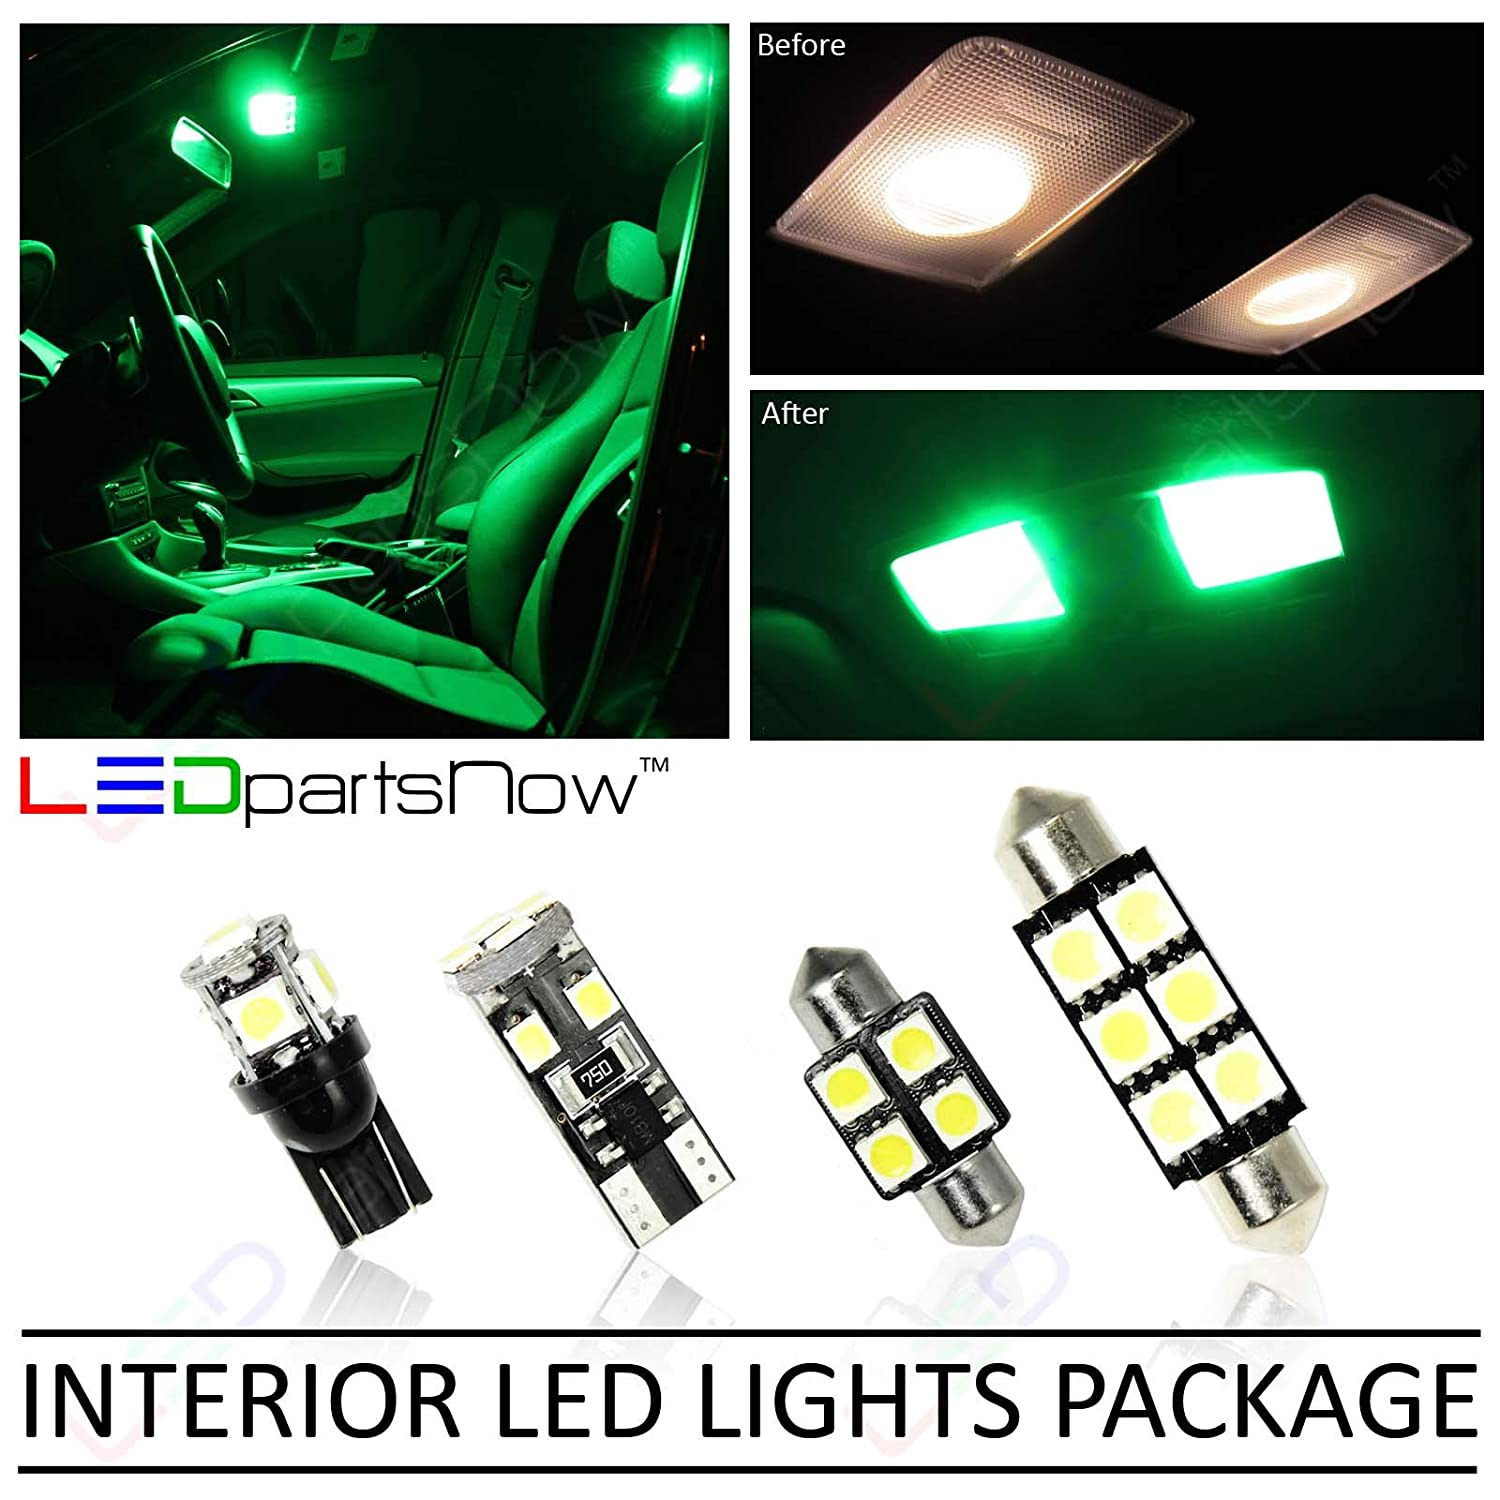 LEDpartsNow Interior LED Lights Replacement for 2003-2009 Hummer H2 Accessories Package Kit (20 Bulbs), GREEN